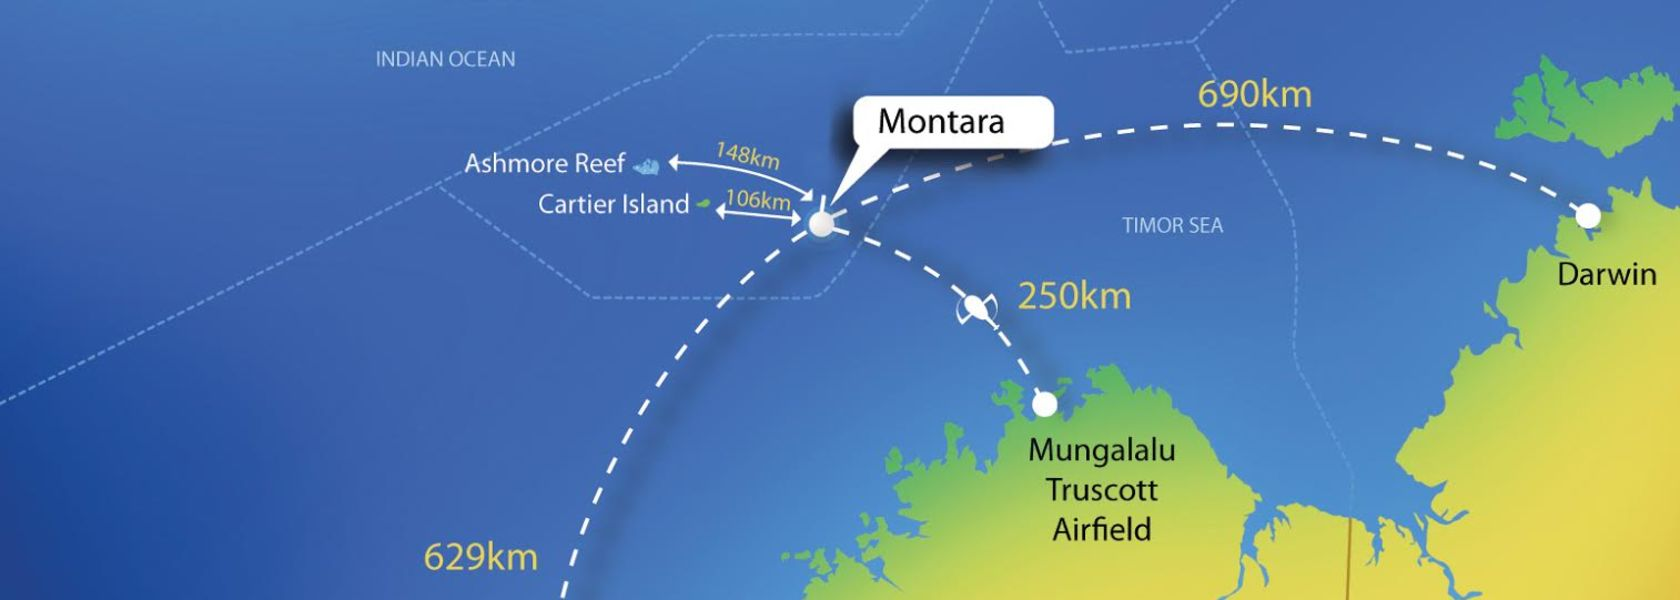 Montara production up since restart